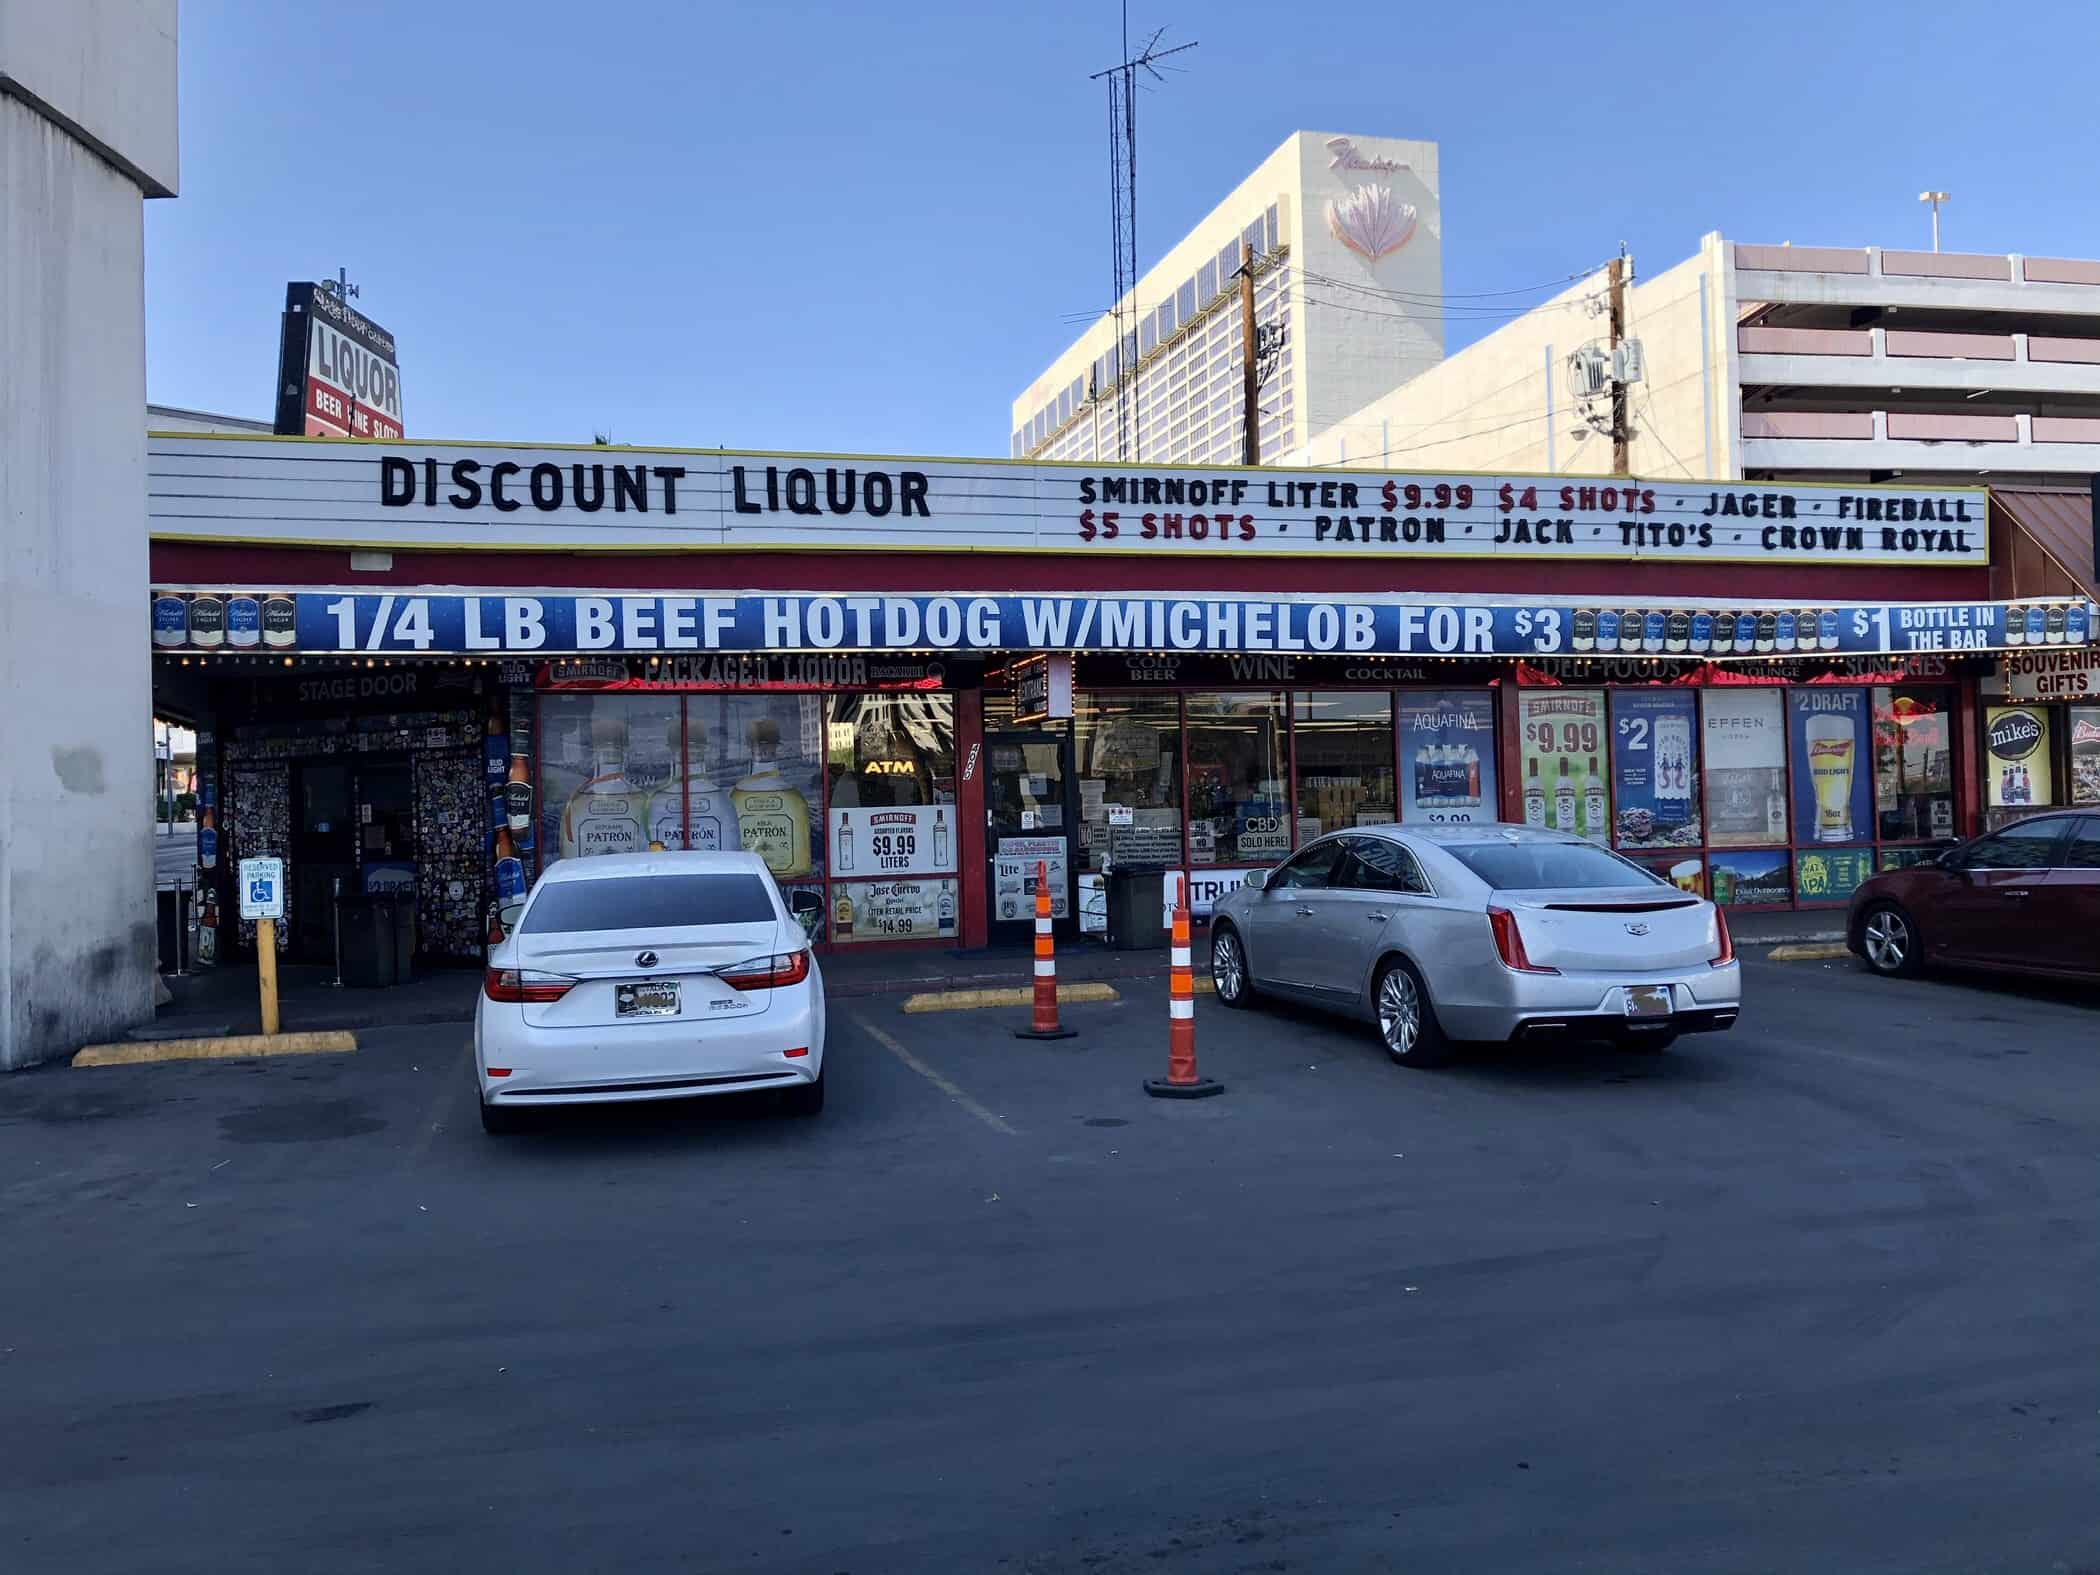 Stage Door Casino – A Staple of Value on the Strip